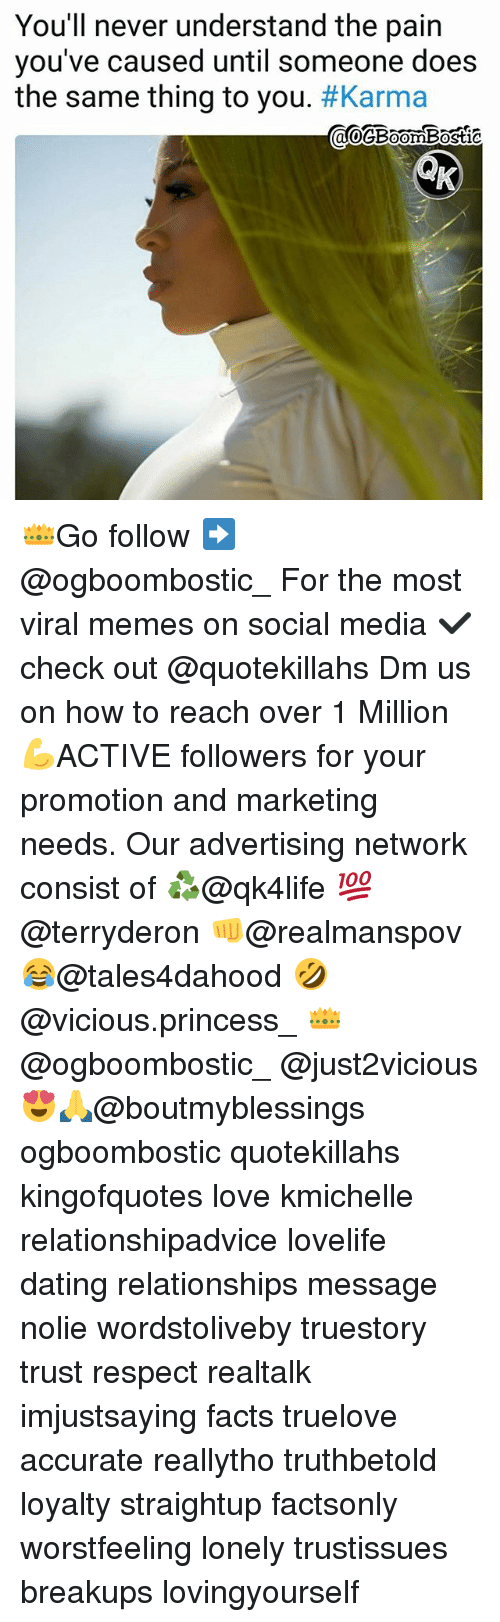 Dating, Facts, and Love: You'll never understand the pain  you've caused until someone does  the same thing to you. #Karma  0 👑Go follow ➡@ogboombostic_ For the most viral memes on social media ✔check out @quotekillahs Dm us on how to reach over 1 Million💪ACTIVE followers for your promotion and marketing needs. Our advertising network consist of ♻@qk4life 💯@terryderon 👊@realmanspov 😂@tales4dahood 🤣@vicious.princess_ 👑@ogboombostic_ @just2vicious😍🙏@boutmyblessings ogboombostic quotekillahs kingofquotes love kmichelle relationshipadvice lovelife dating relationships message nolie wordstoliveby truestory trust respect realtalk imjustsaying facts truelove accurate reallytho truthbetold loyalty straightup factsonly worstfeeling lonely trustissues breakups lovingyourself